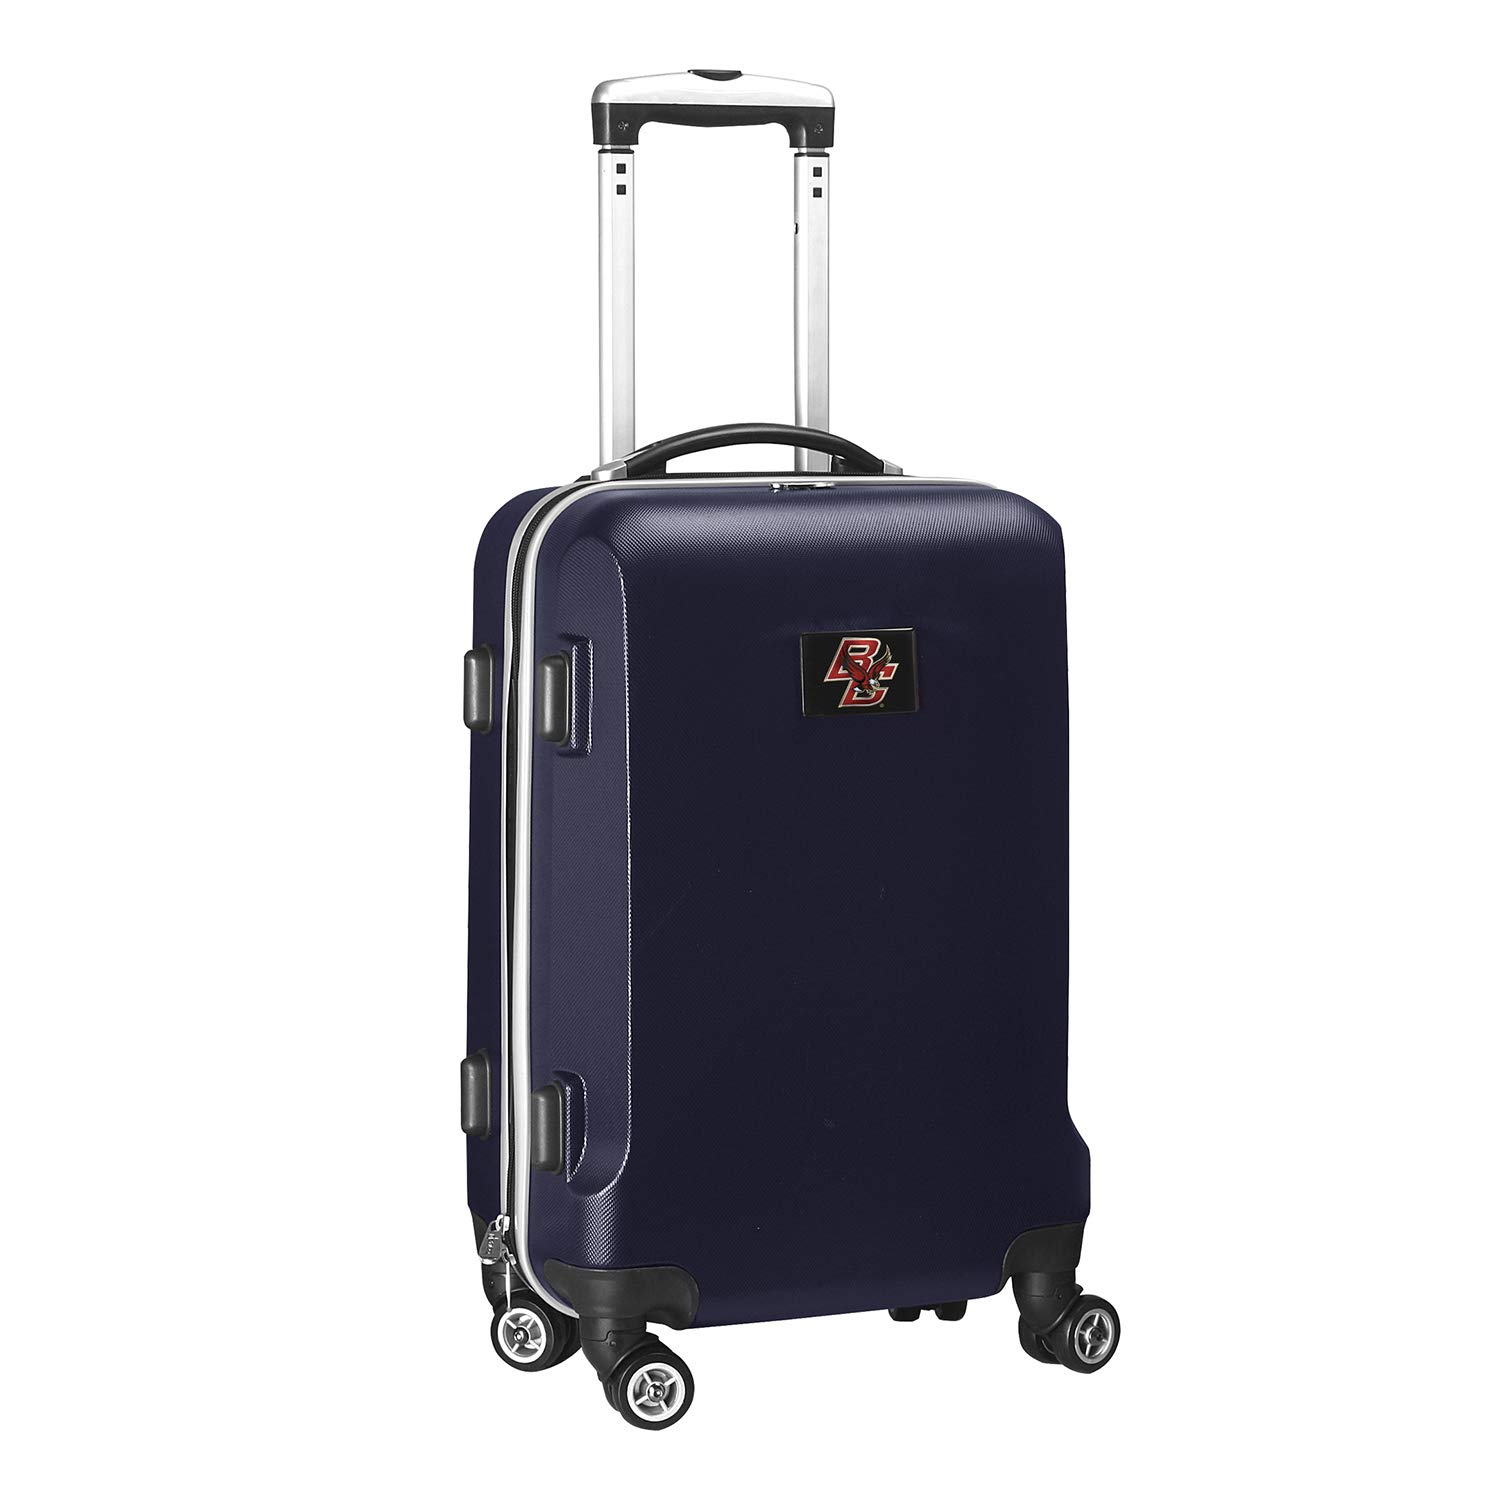 Denco NCAA Boston College Eagles Carry-On Hardcase Luggage Spinner, Navy